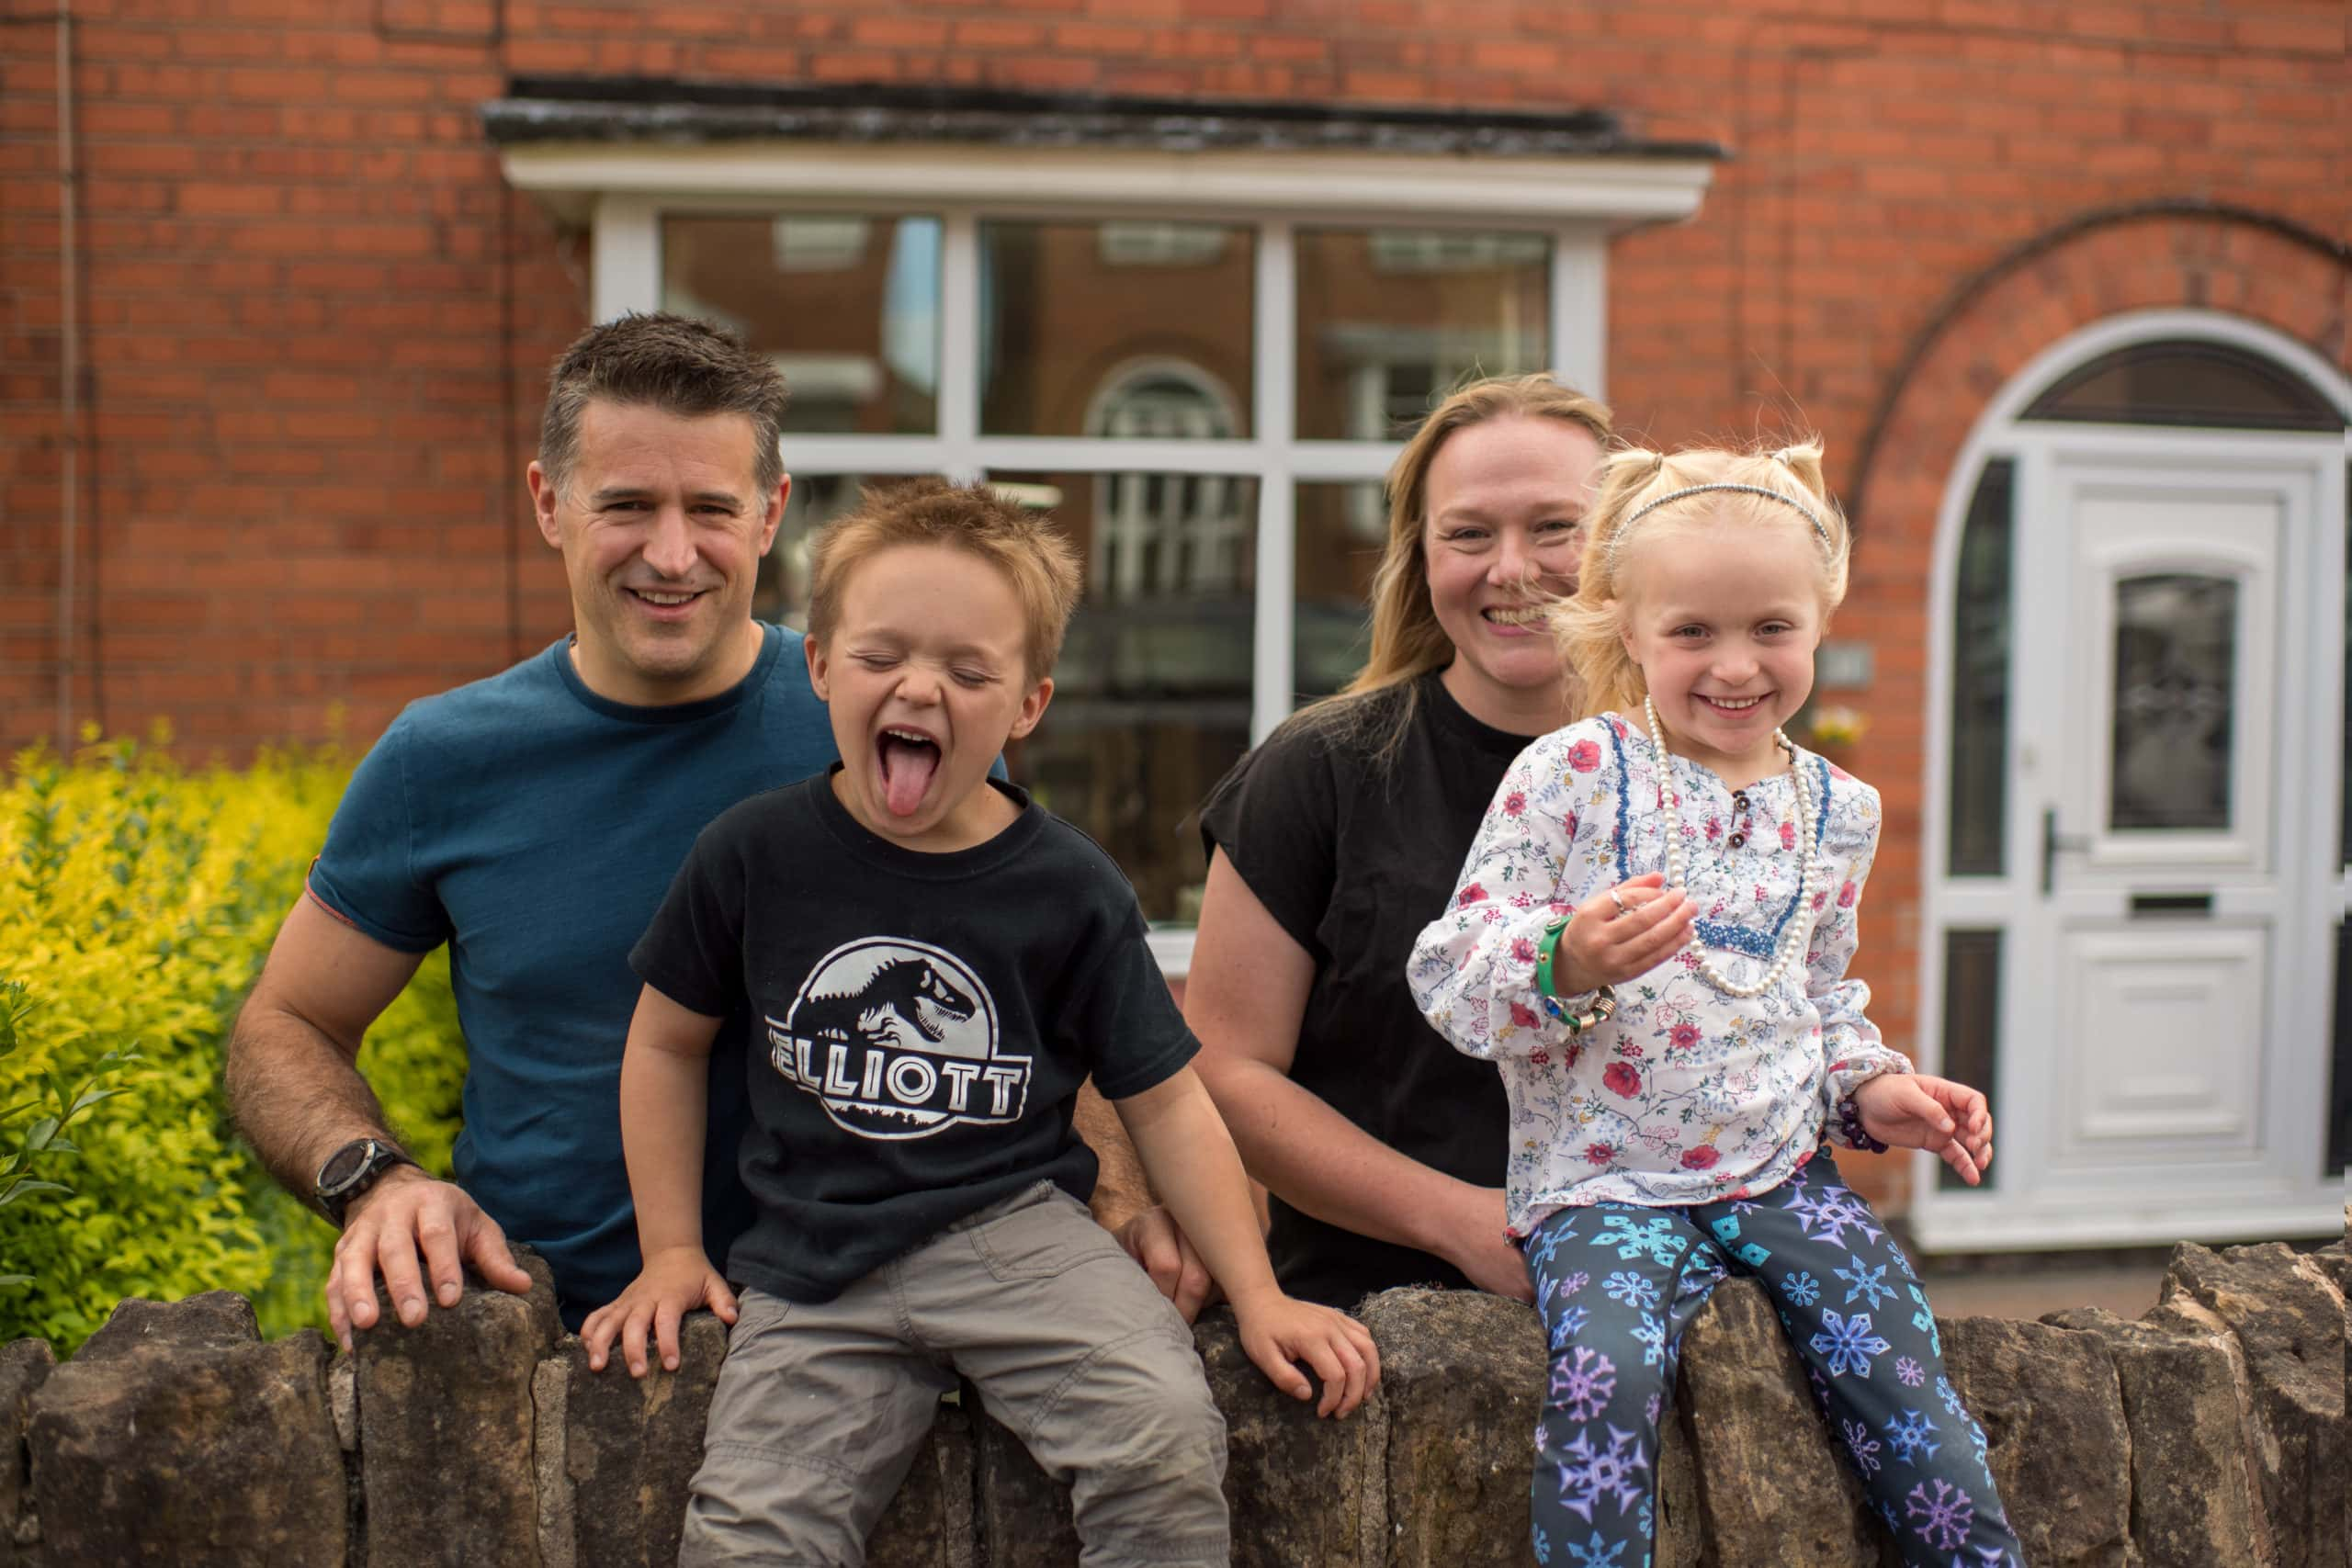 Family having fun during a doorstep shoot